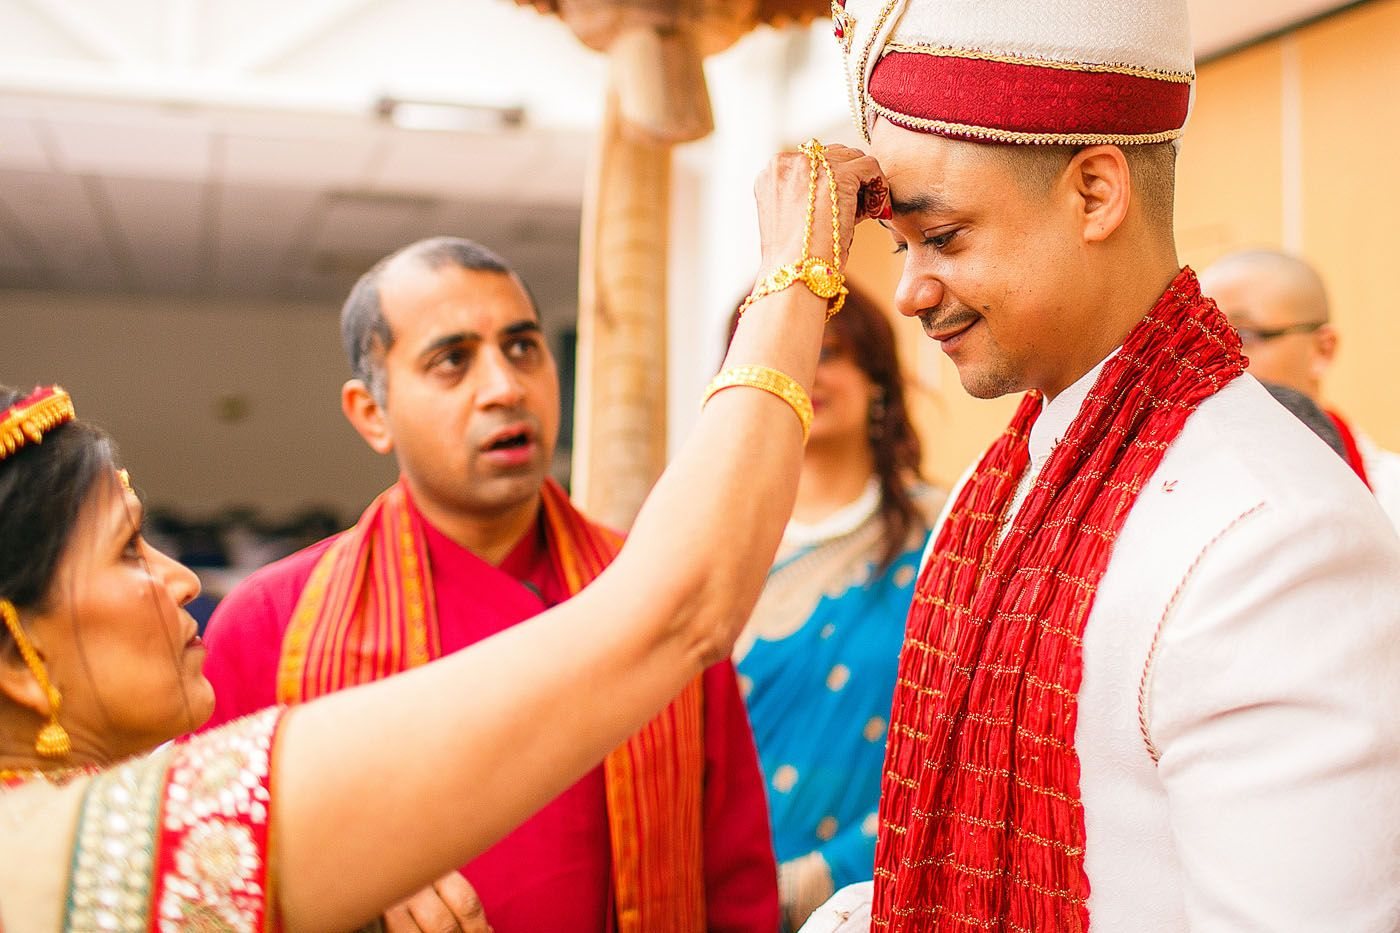 Manor of Groves, Essex - Asian Wedding Photography - www.f5blog.co.uk